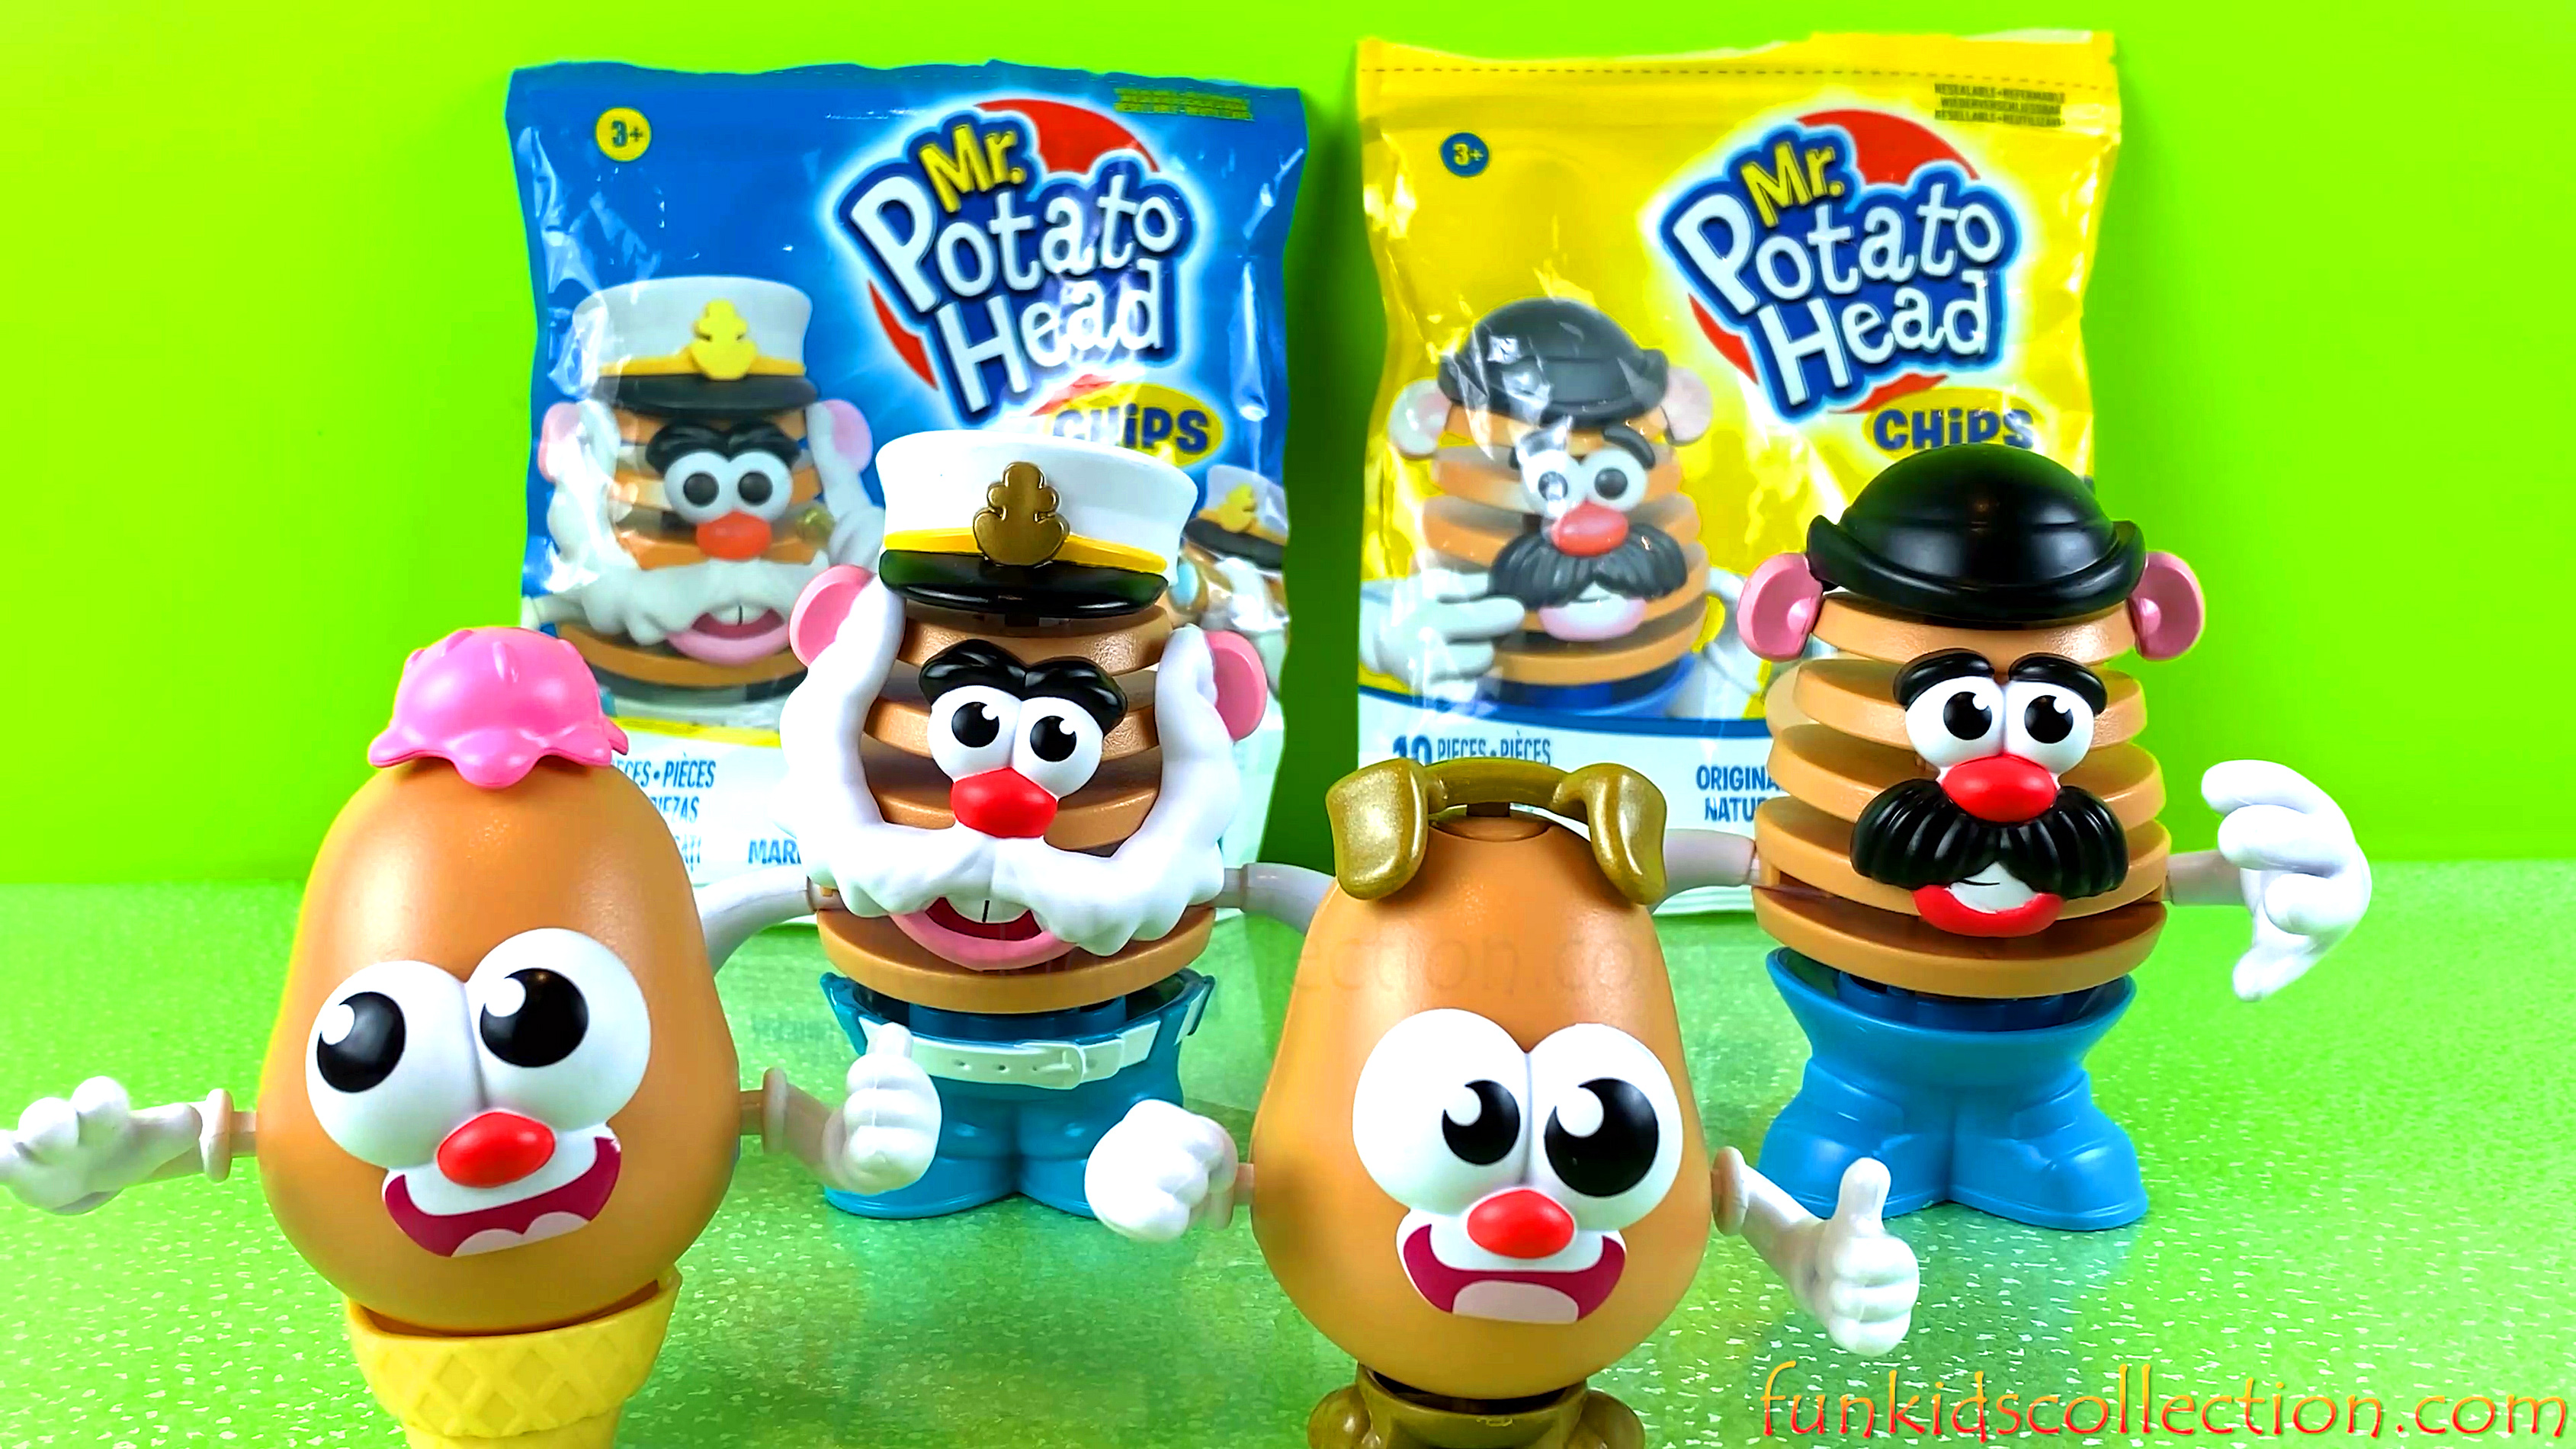 Mr Potato Head Chips Unboxing. Unwrapping Mr. Potato Head Tots Surprises | EBD Toys